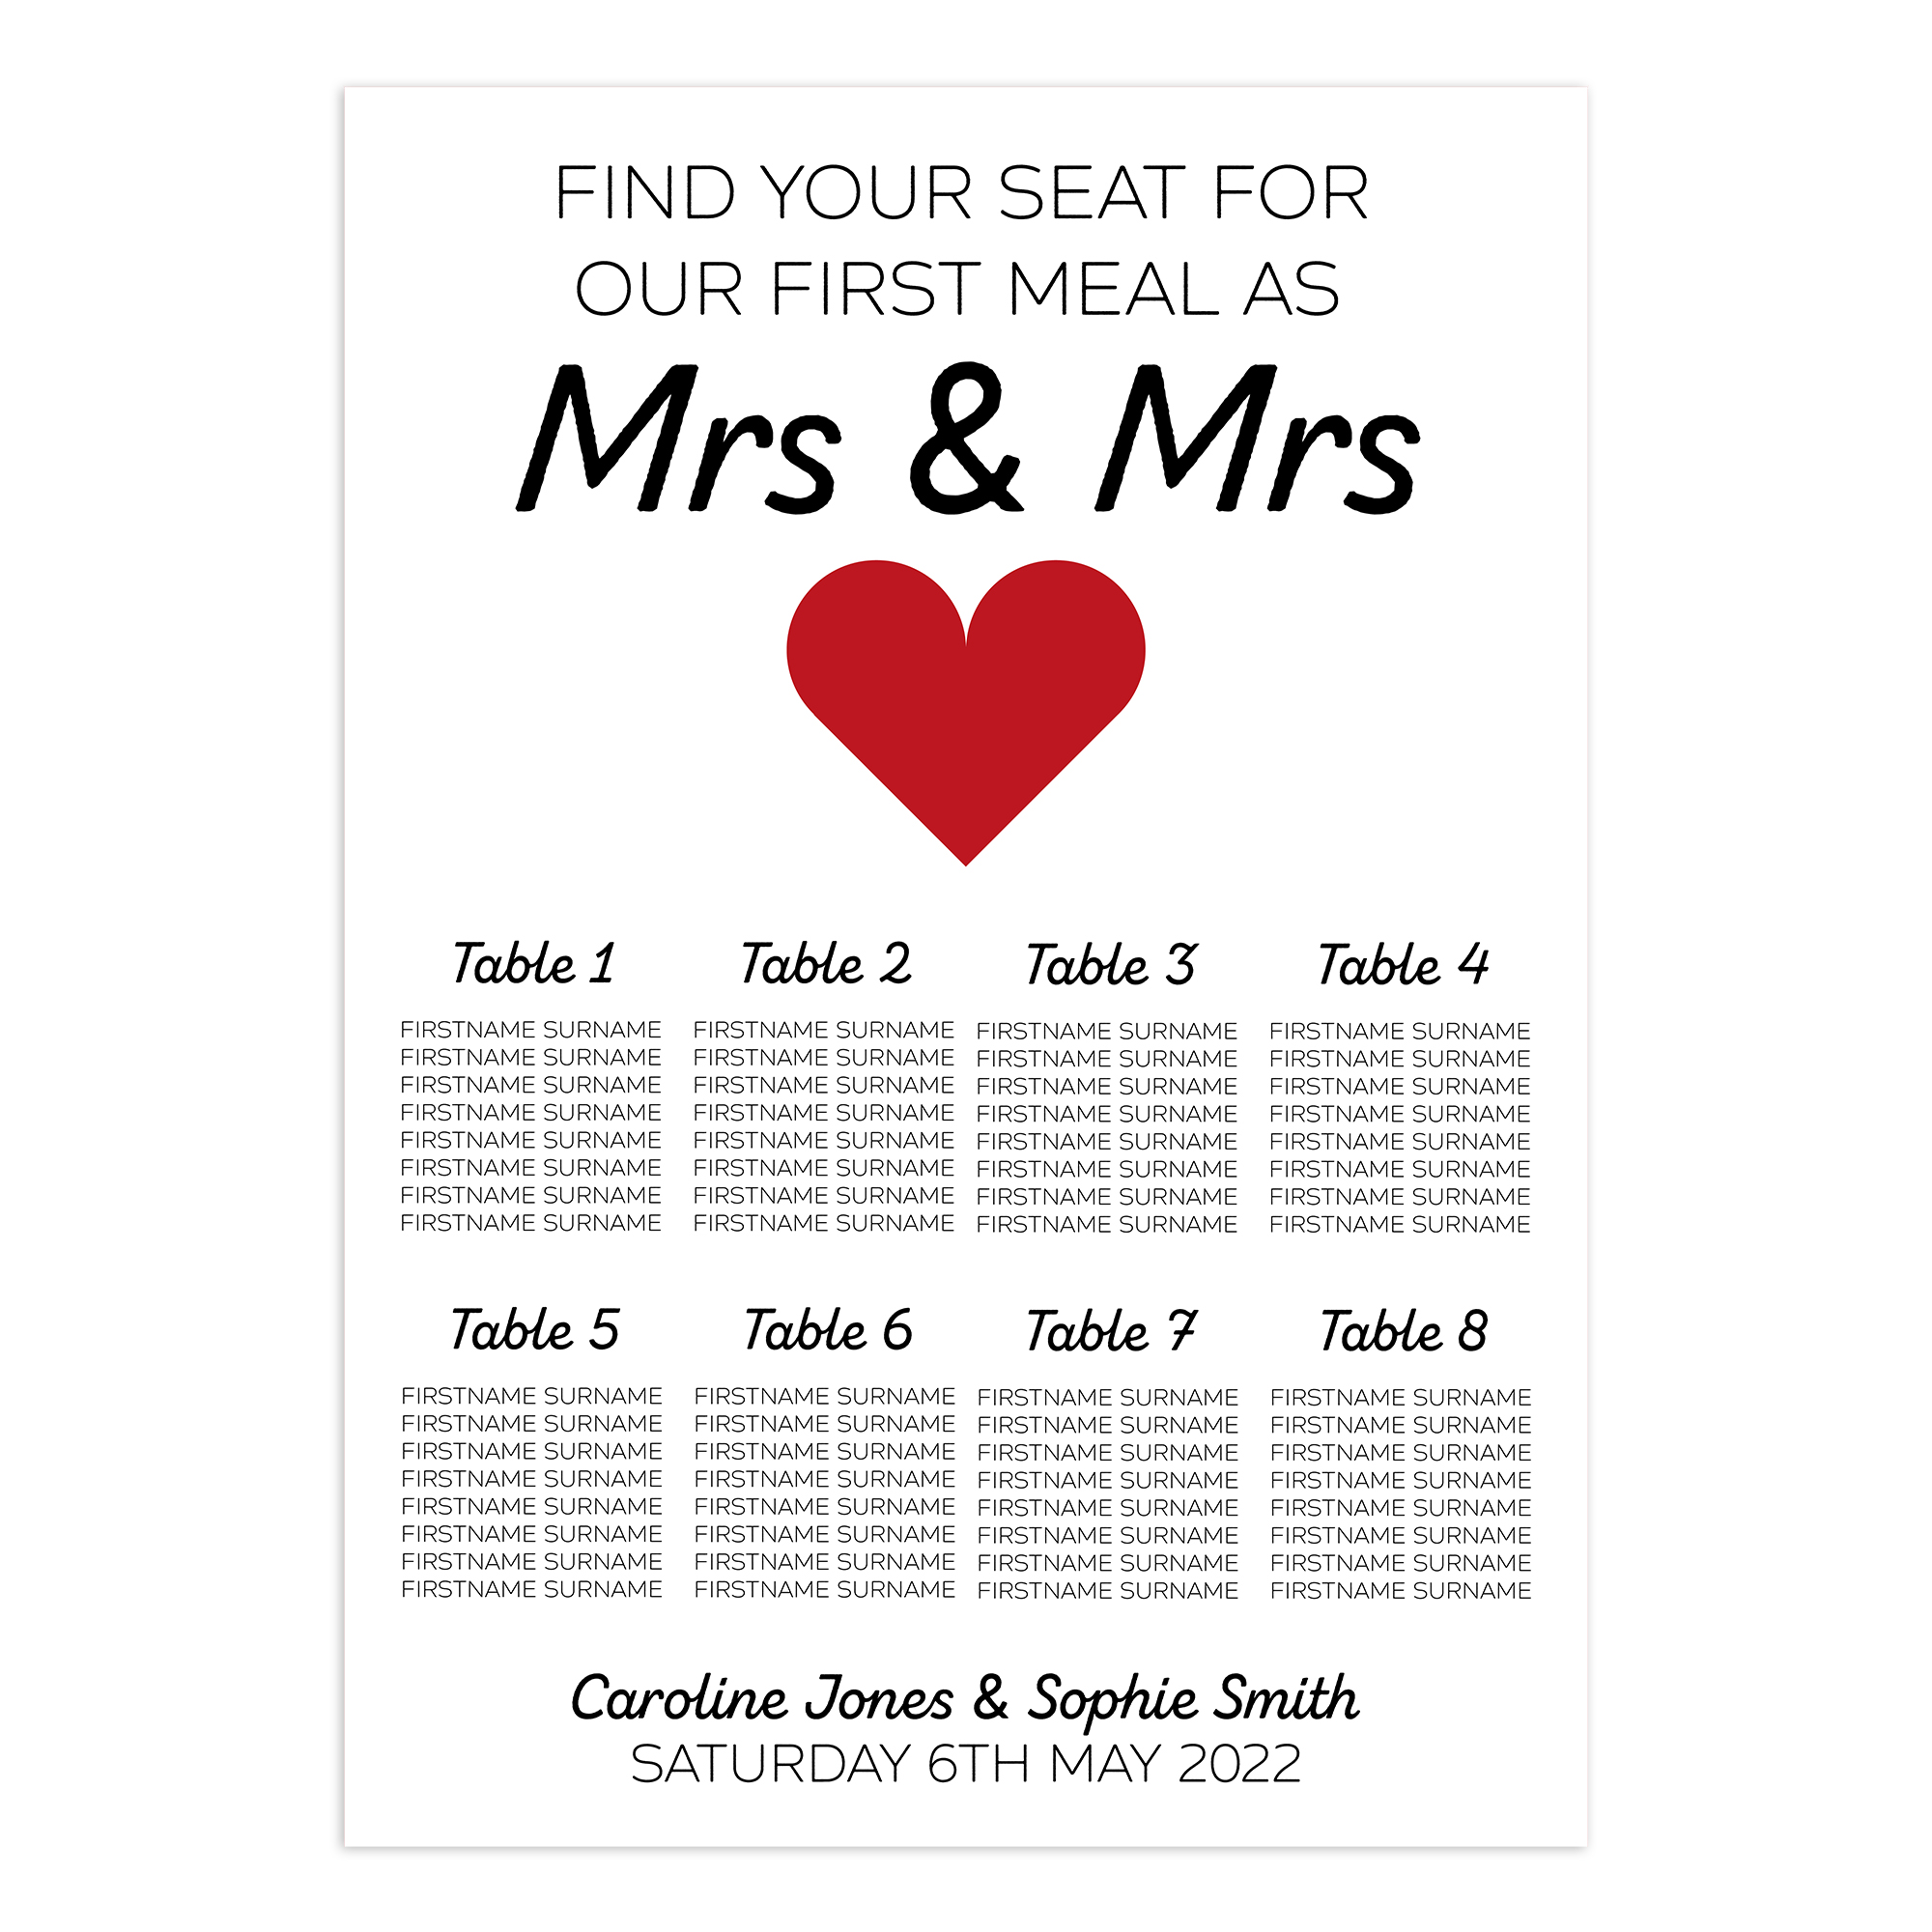 Mrs & Mrs 2mm Card Wedding Breakfast Reception Seating Table Plan